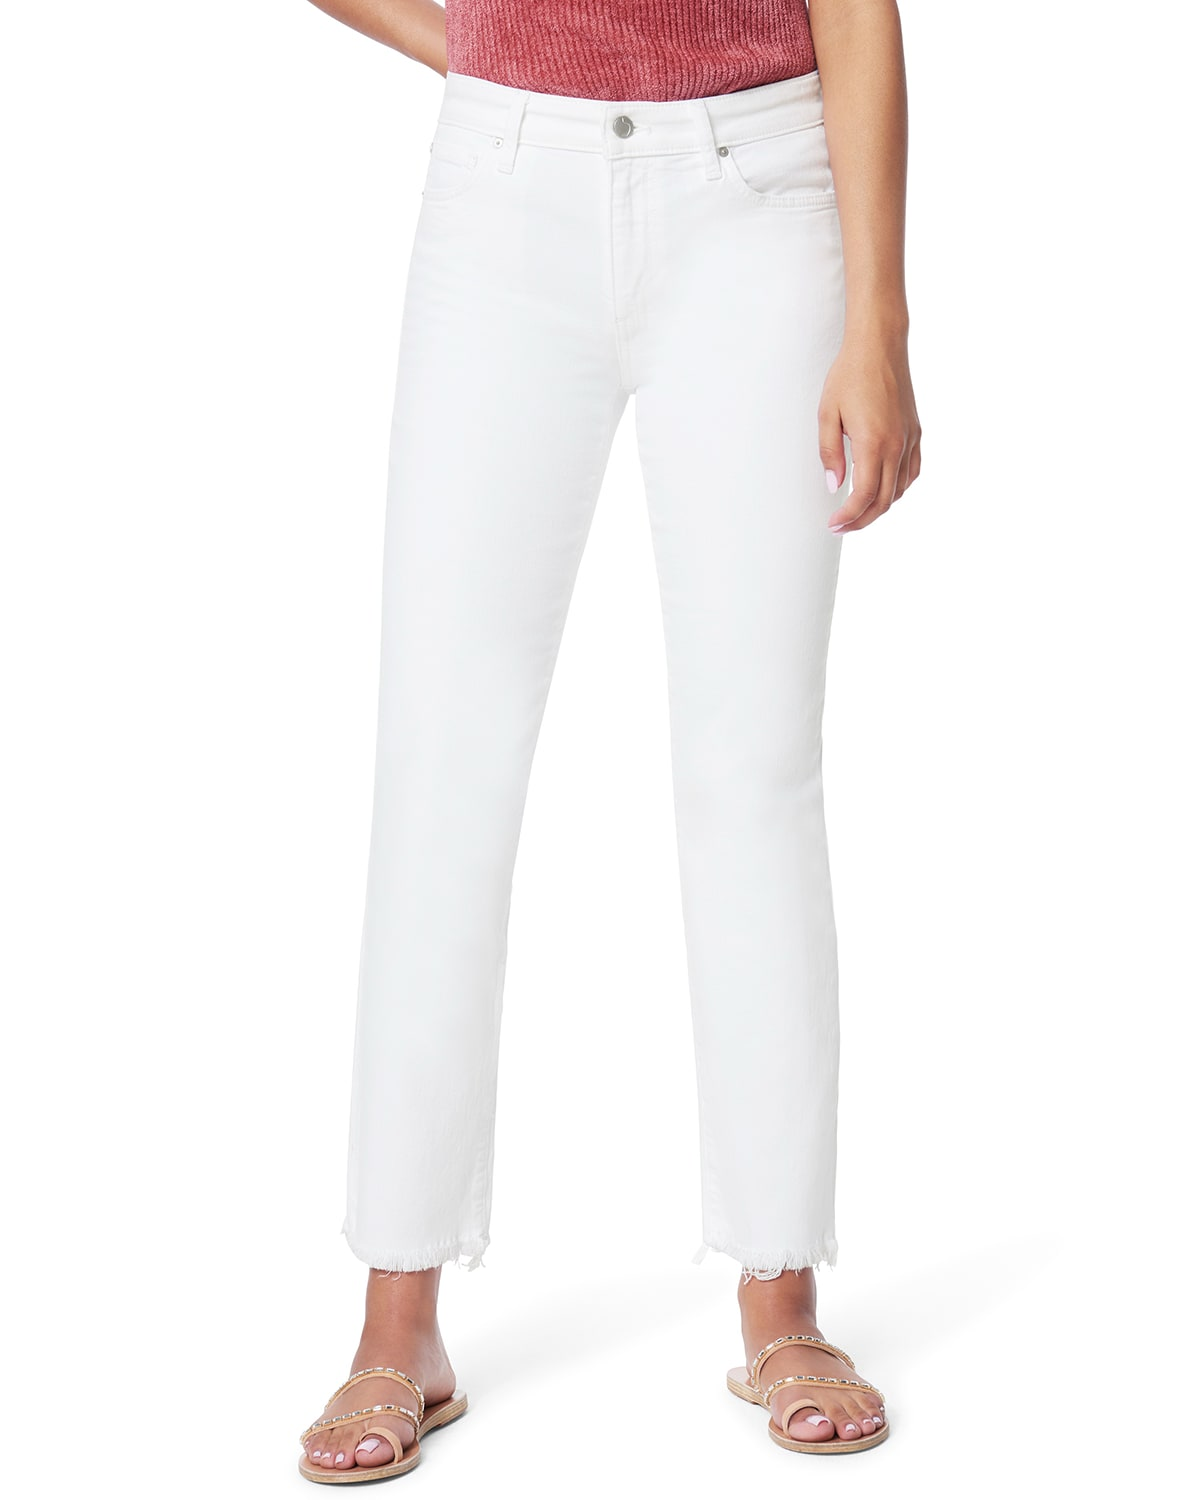 The Lara Mid-Rise Cigarette Ankle Jeans with Cut Hem